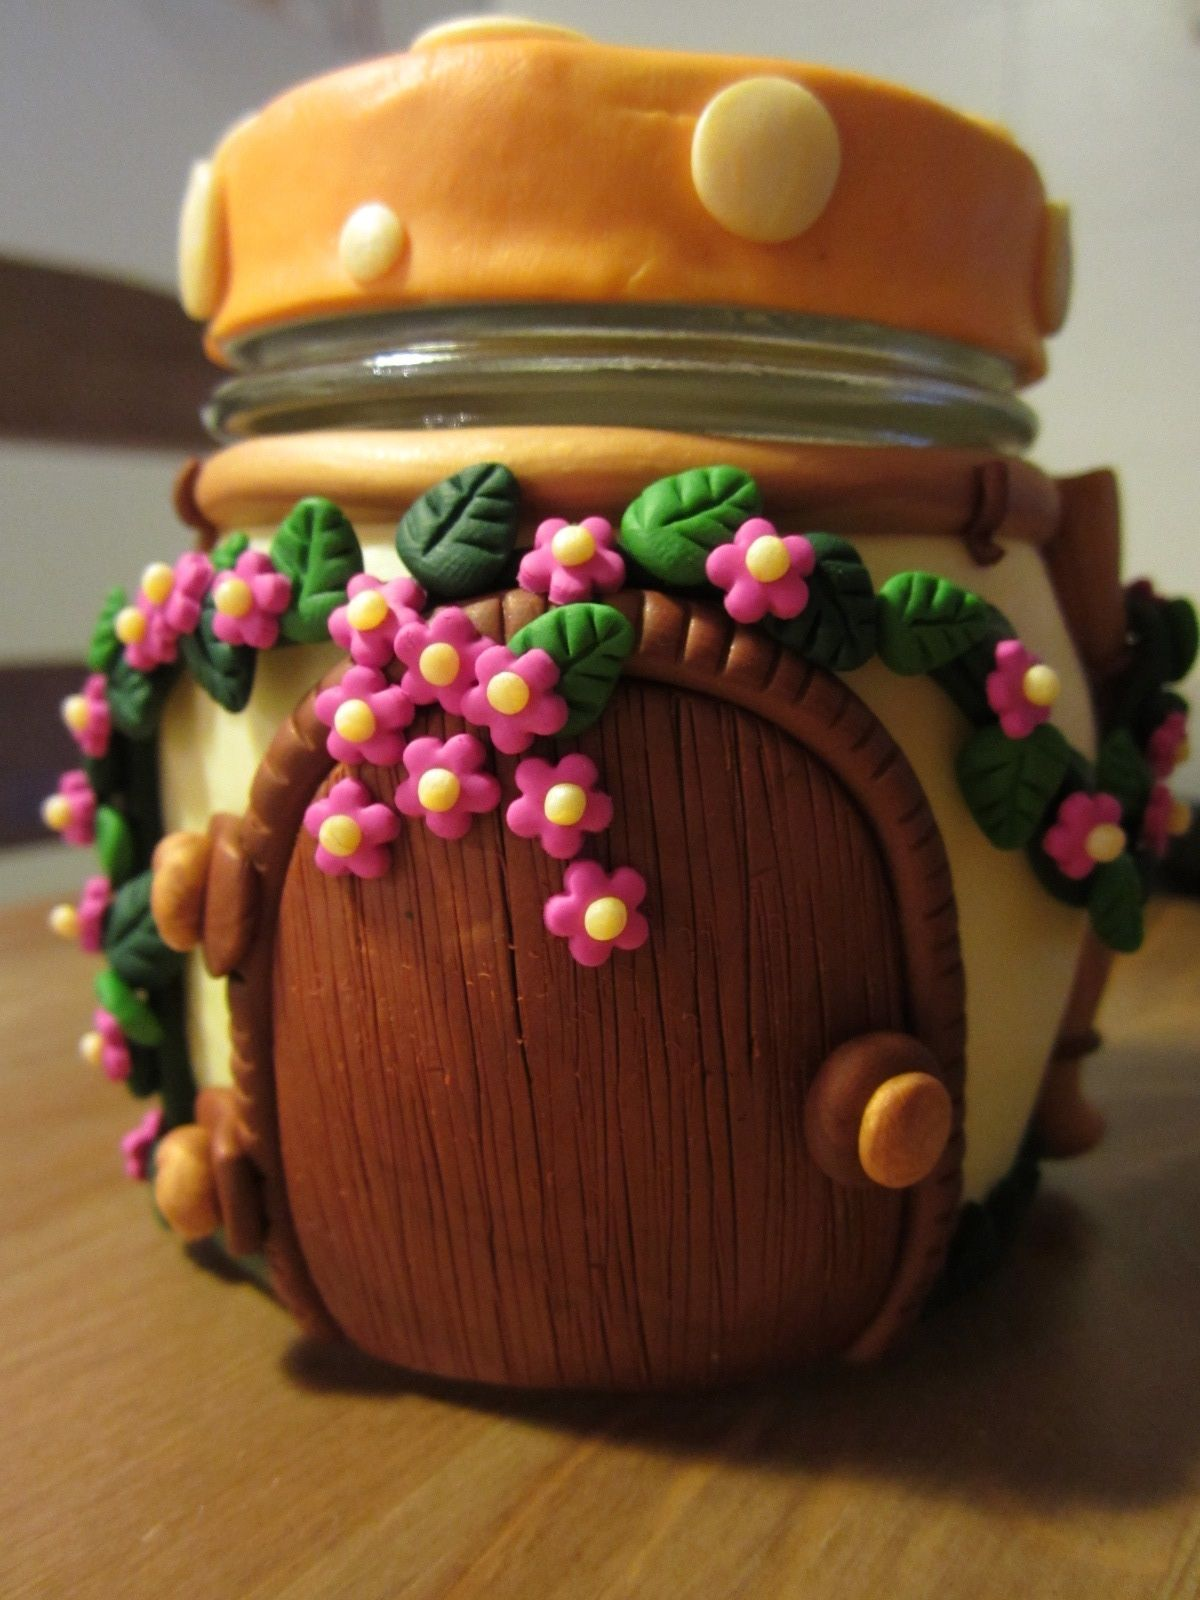 I like the idea I've covering jars to look like little houses. Even an Italy theme would look great!